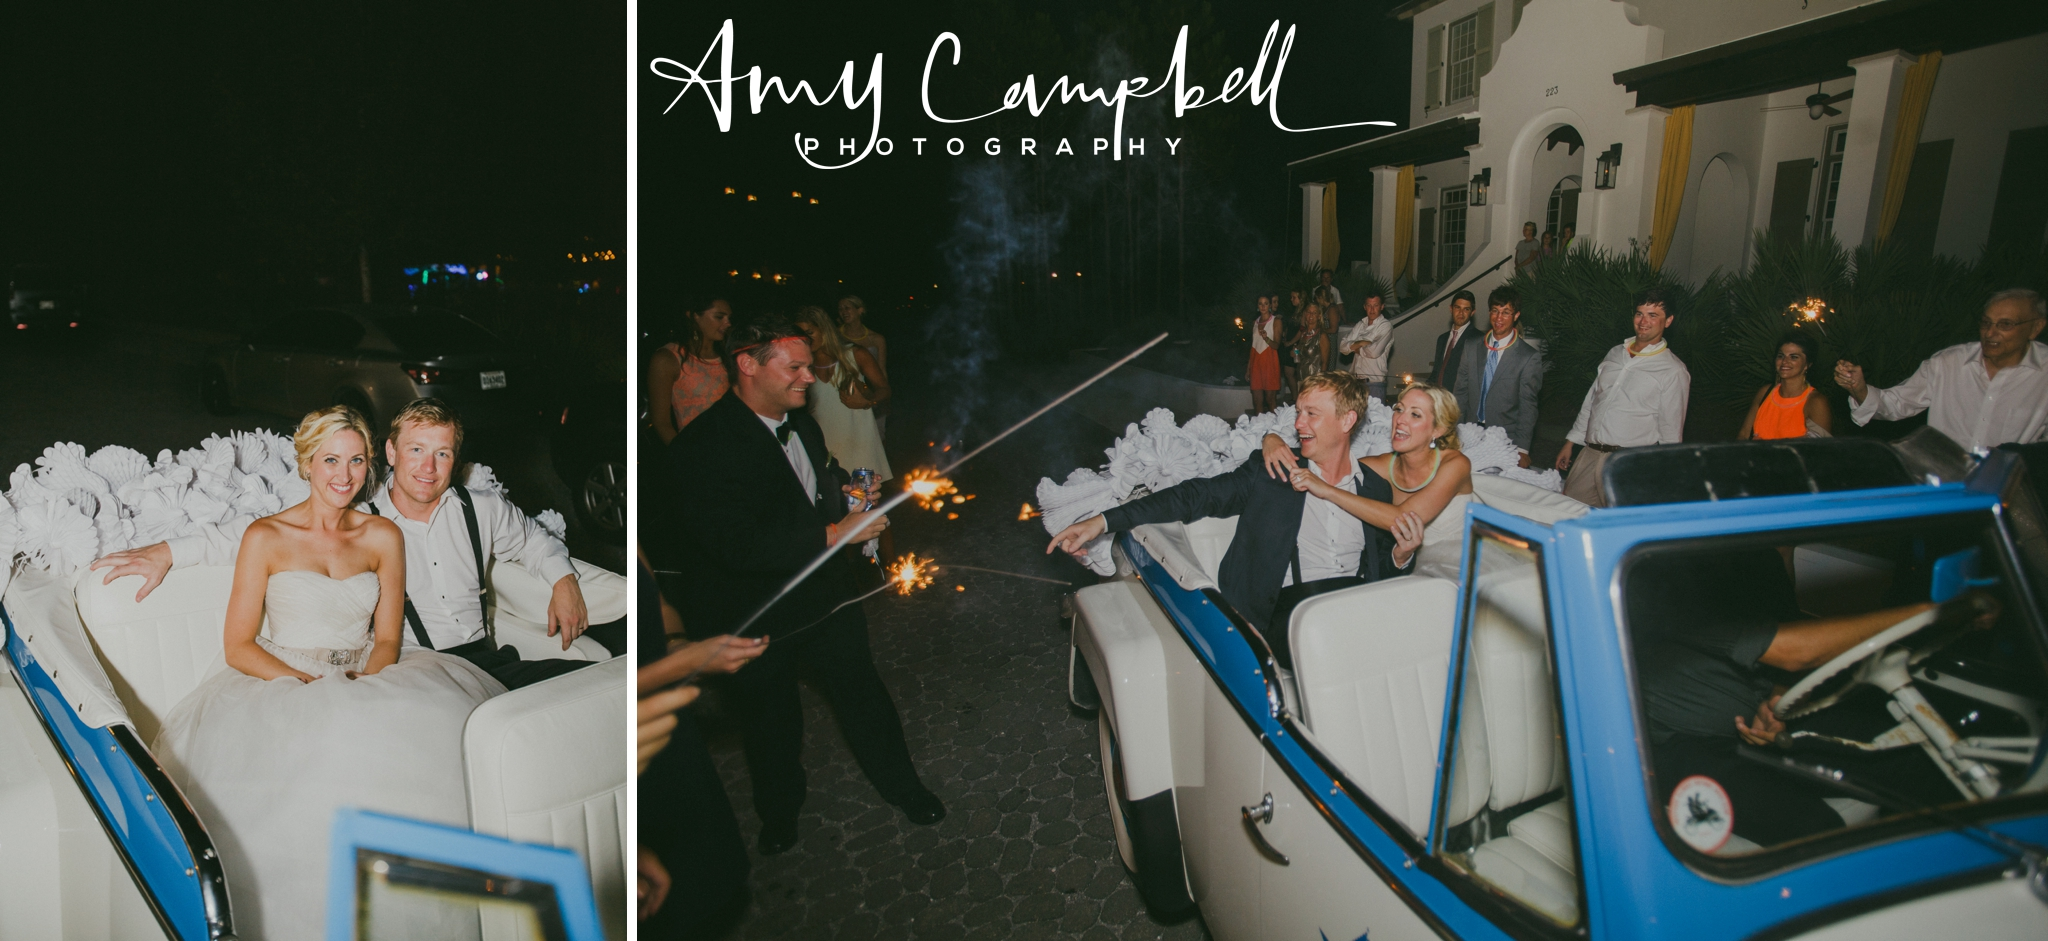 emilyreed_wed_blog_amycampbellphotography_0116.jpg